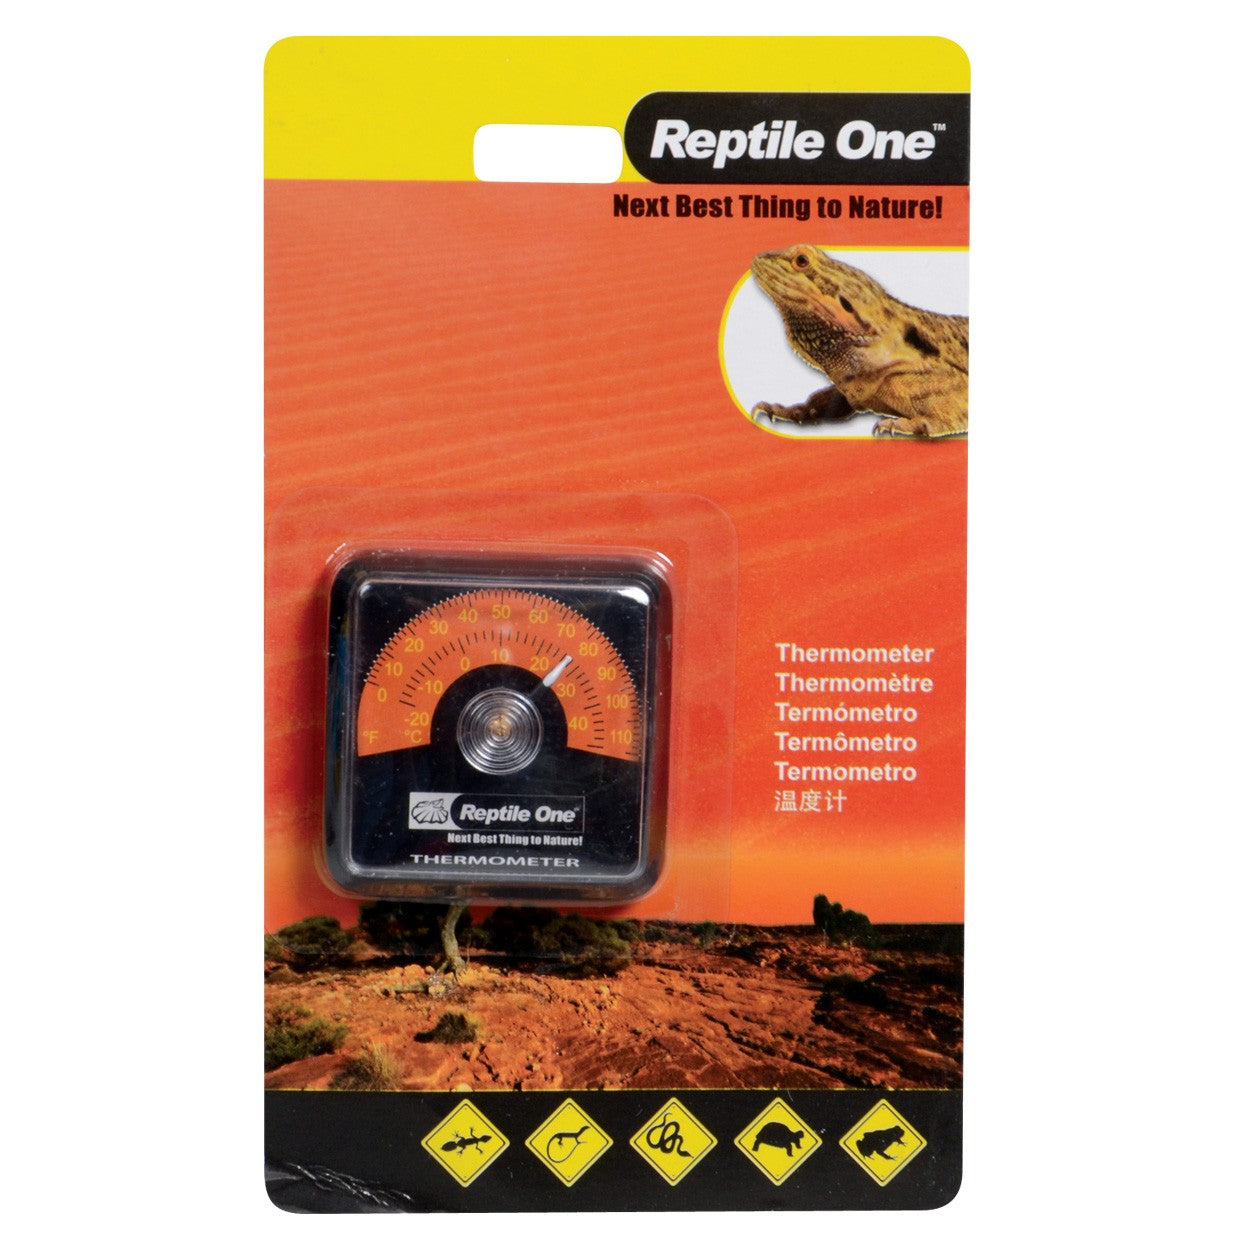 Reptile One Stick On Thermometer